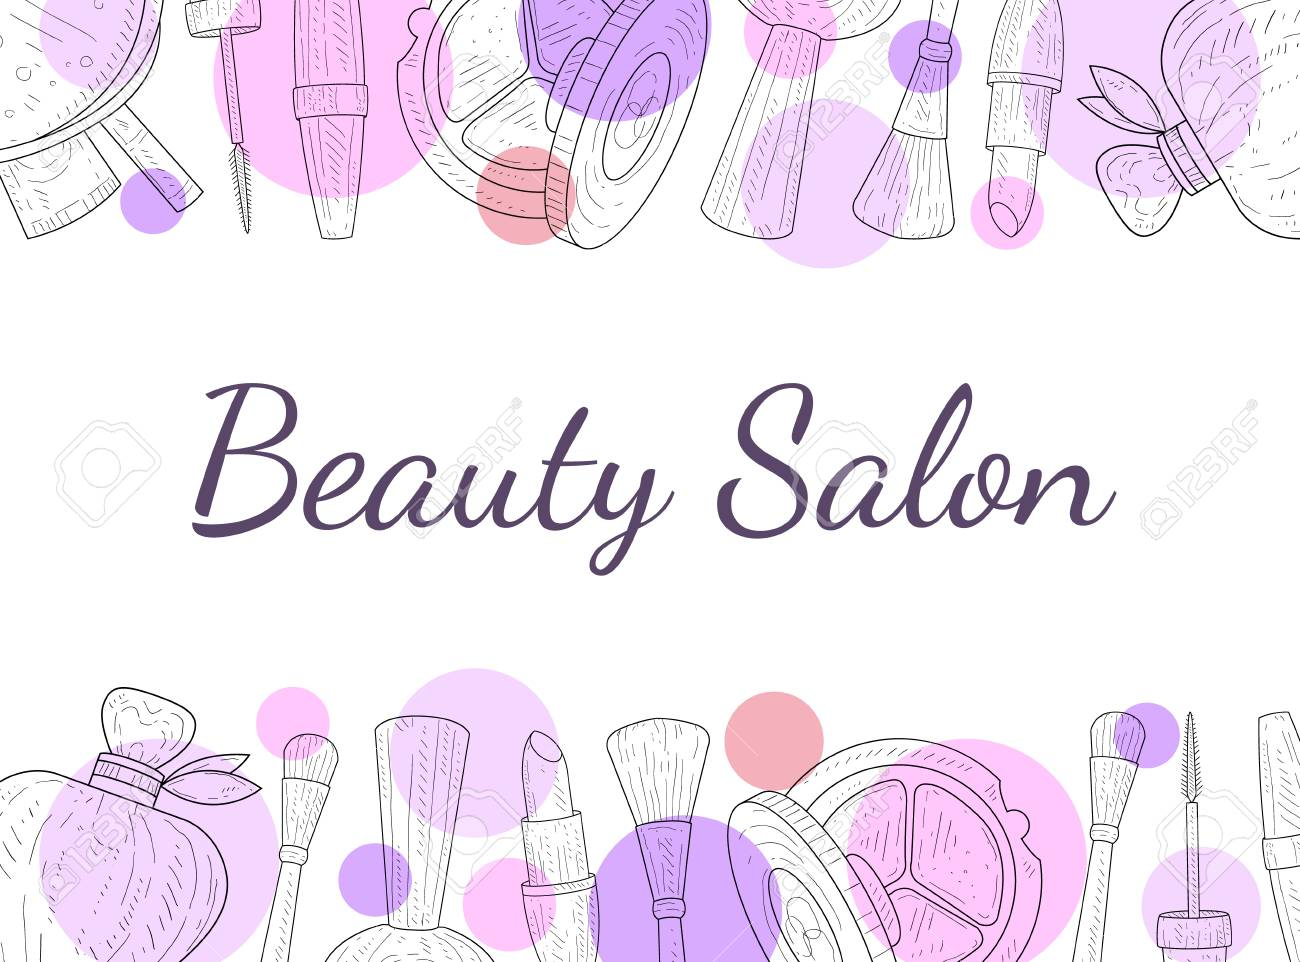 Beauty Salon Banner Template Cosmetics And Beauty Background Royalty Free Cliparts Vectors And Stock Illustration Image 121316483